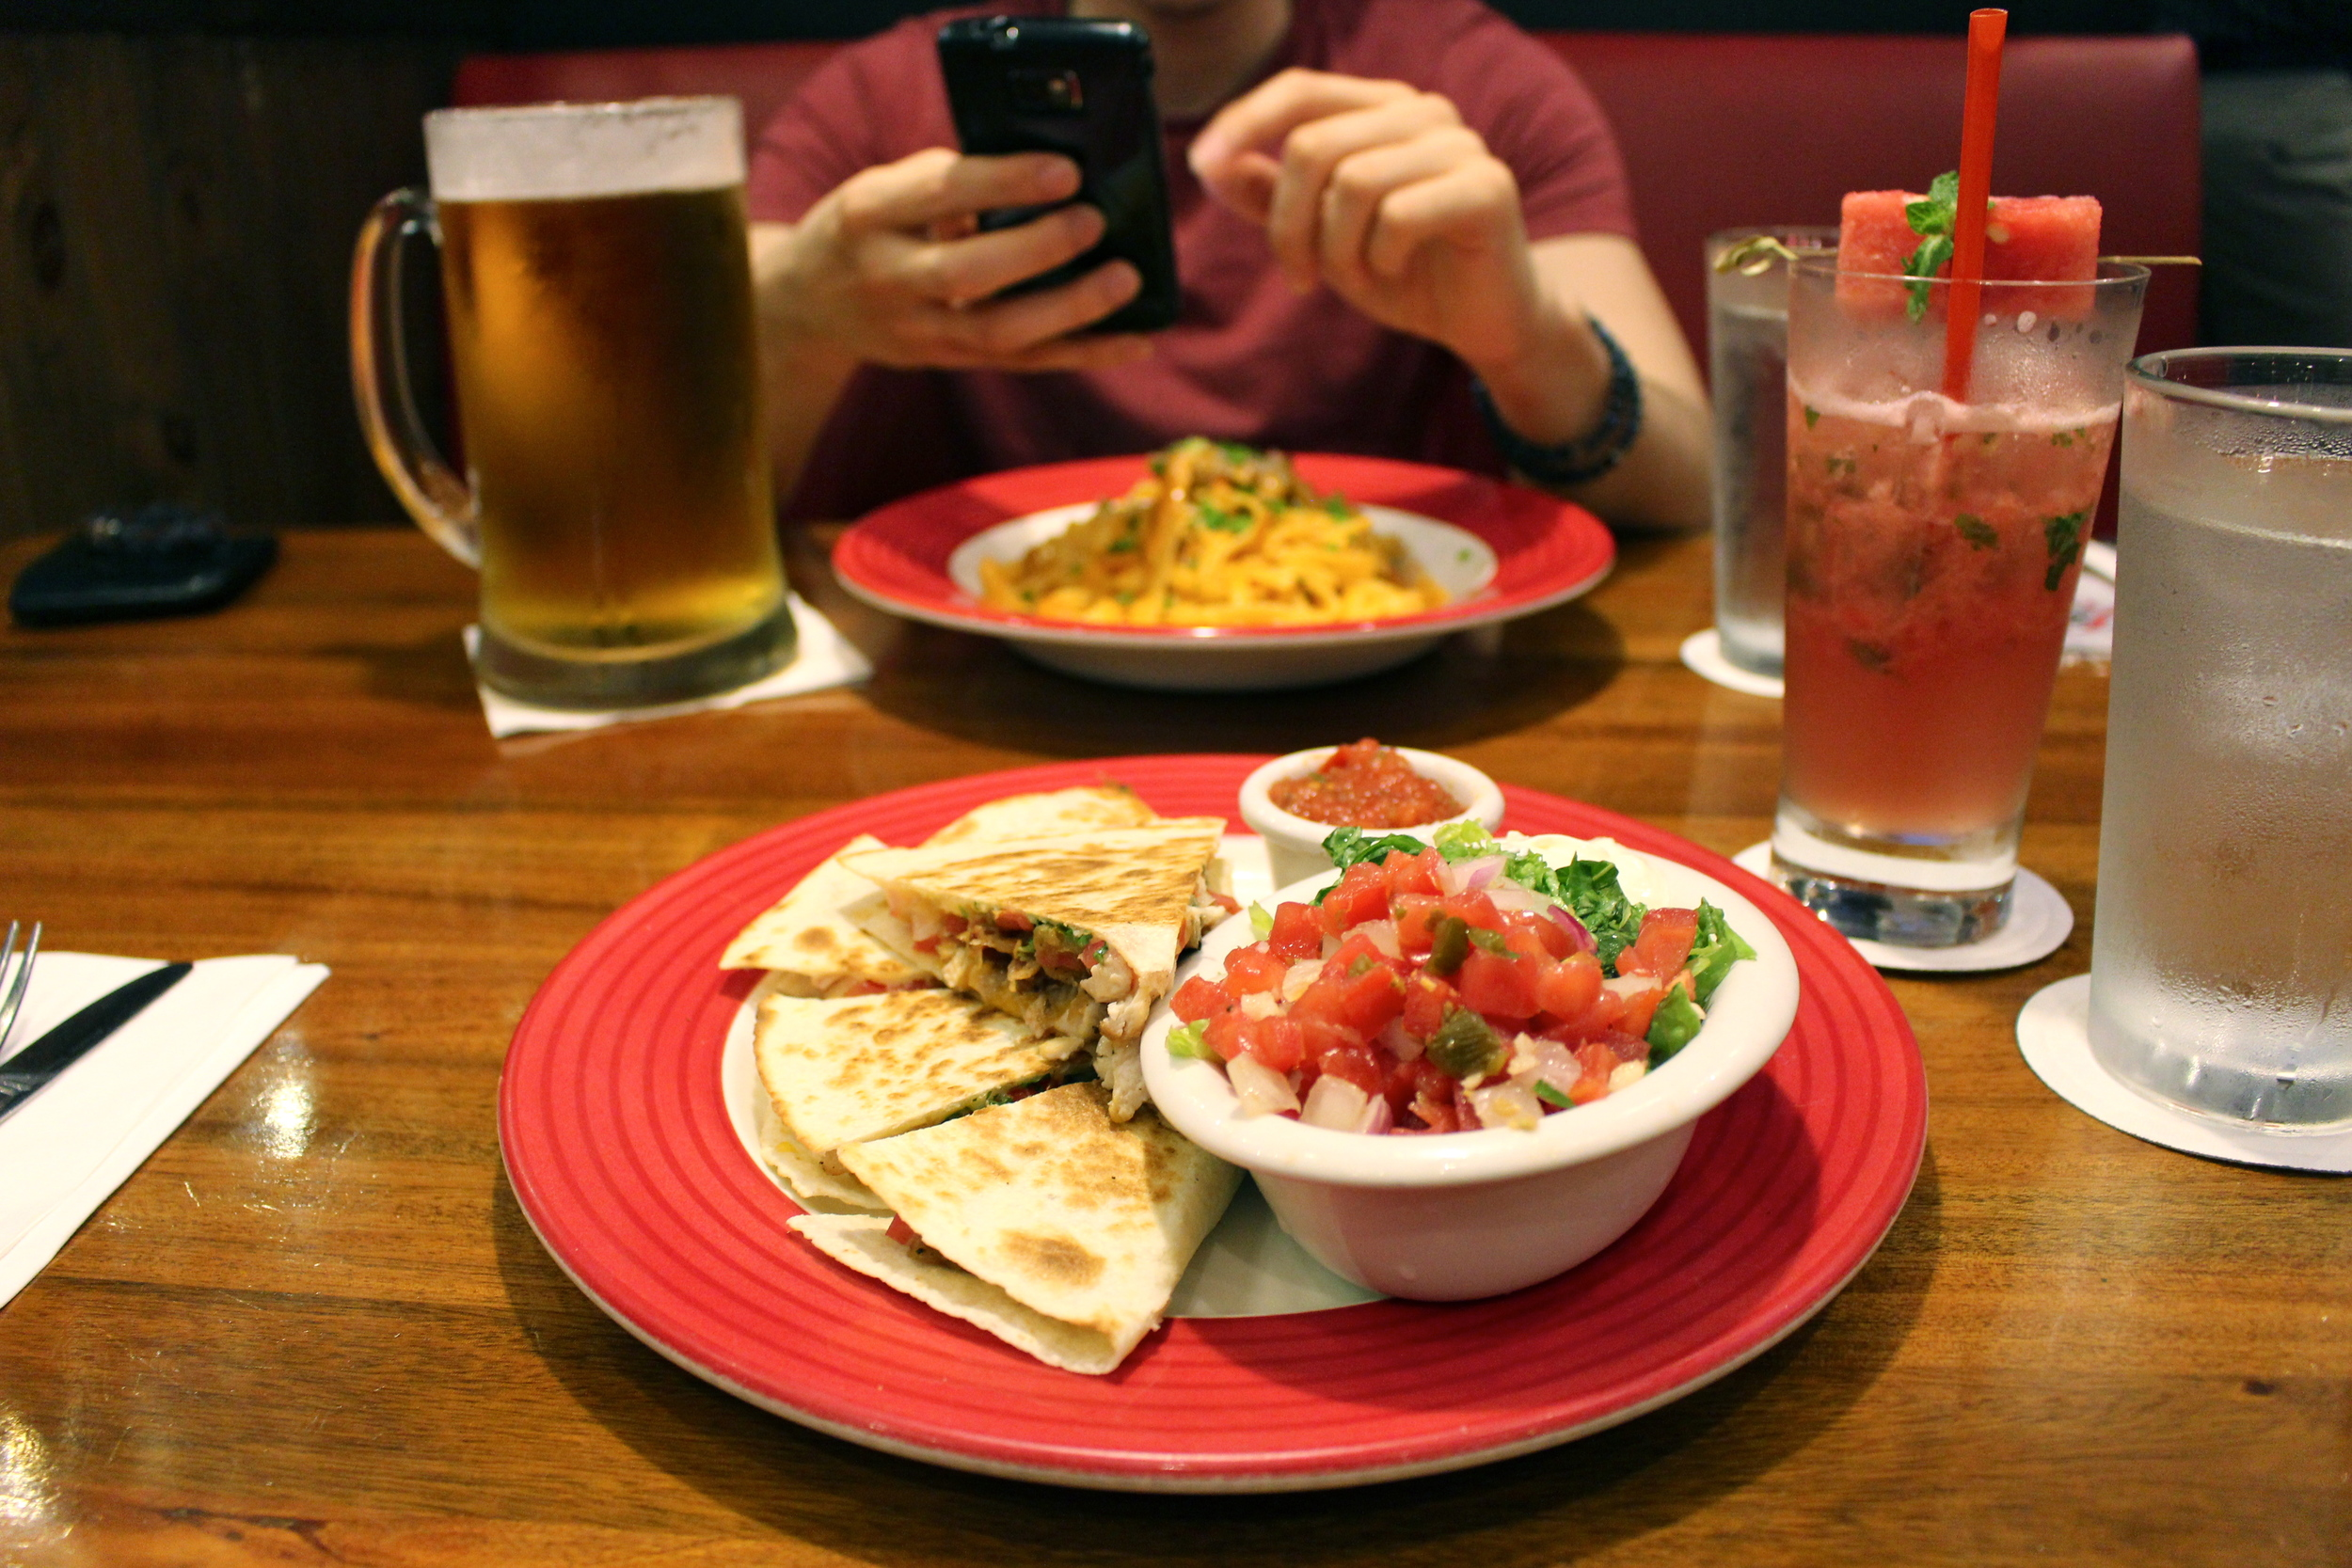 Quesadillas at TGI Friday's